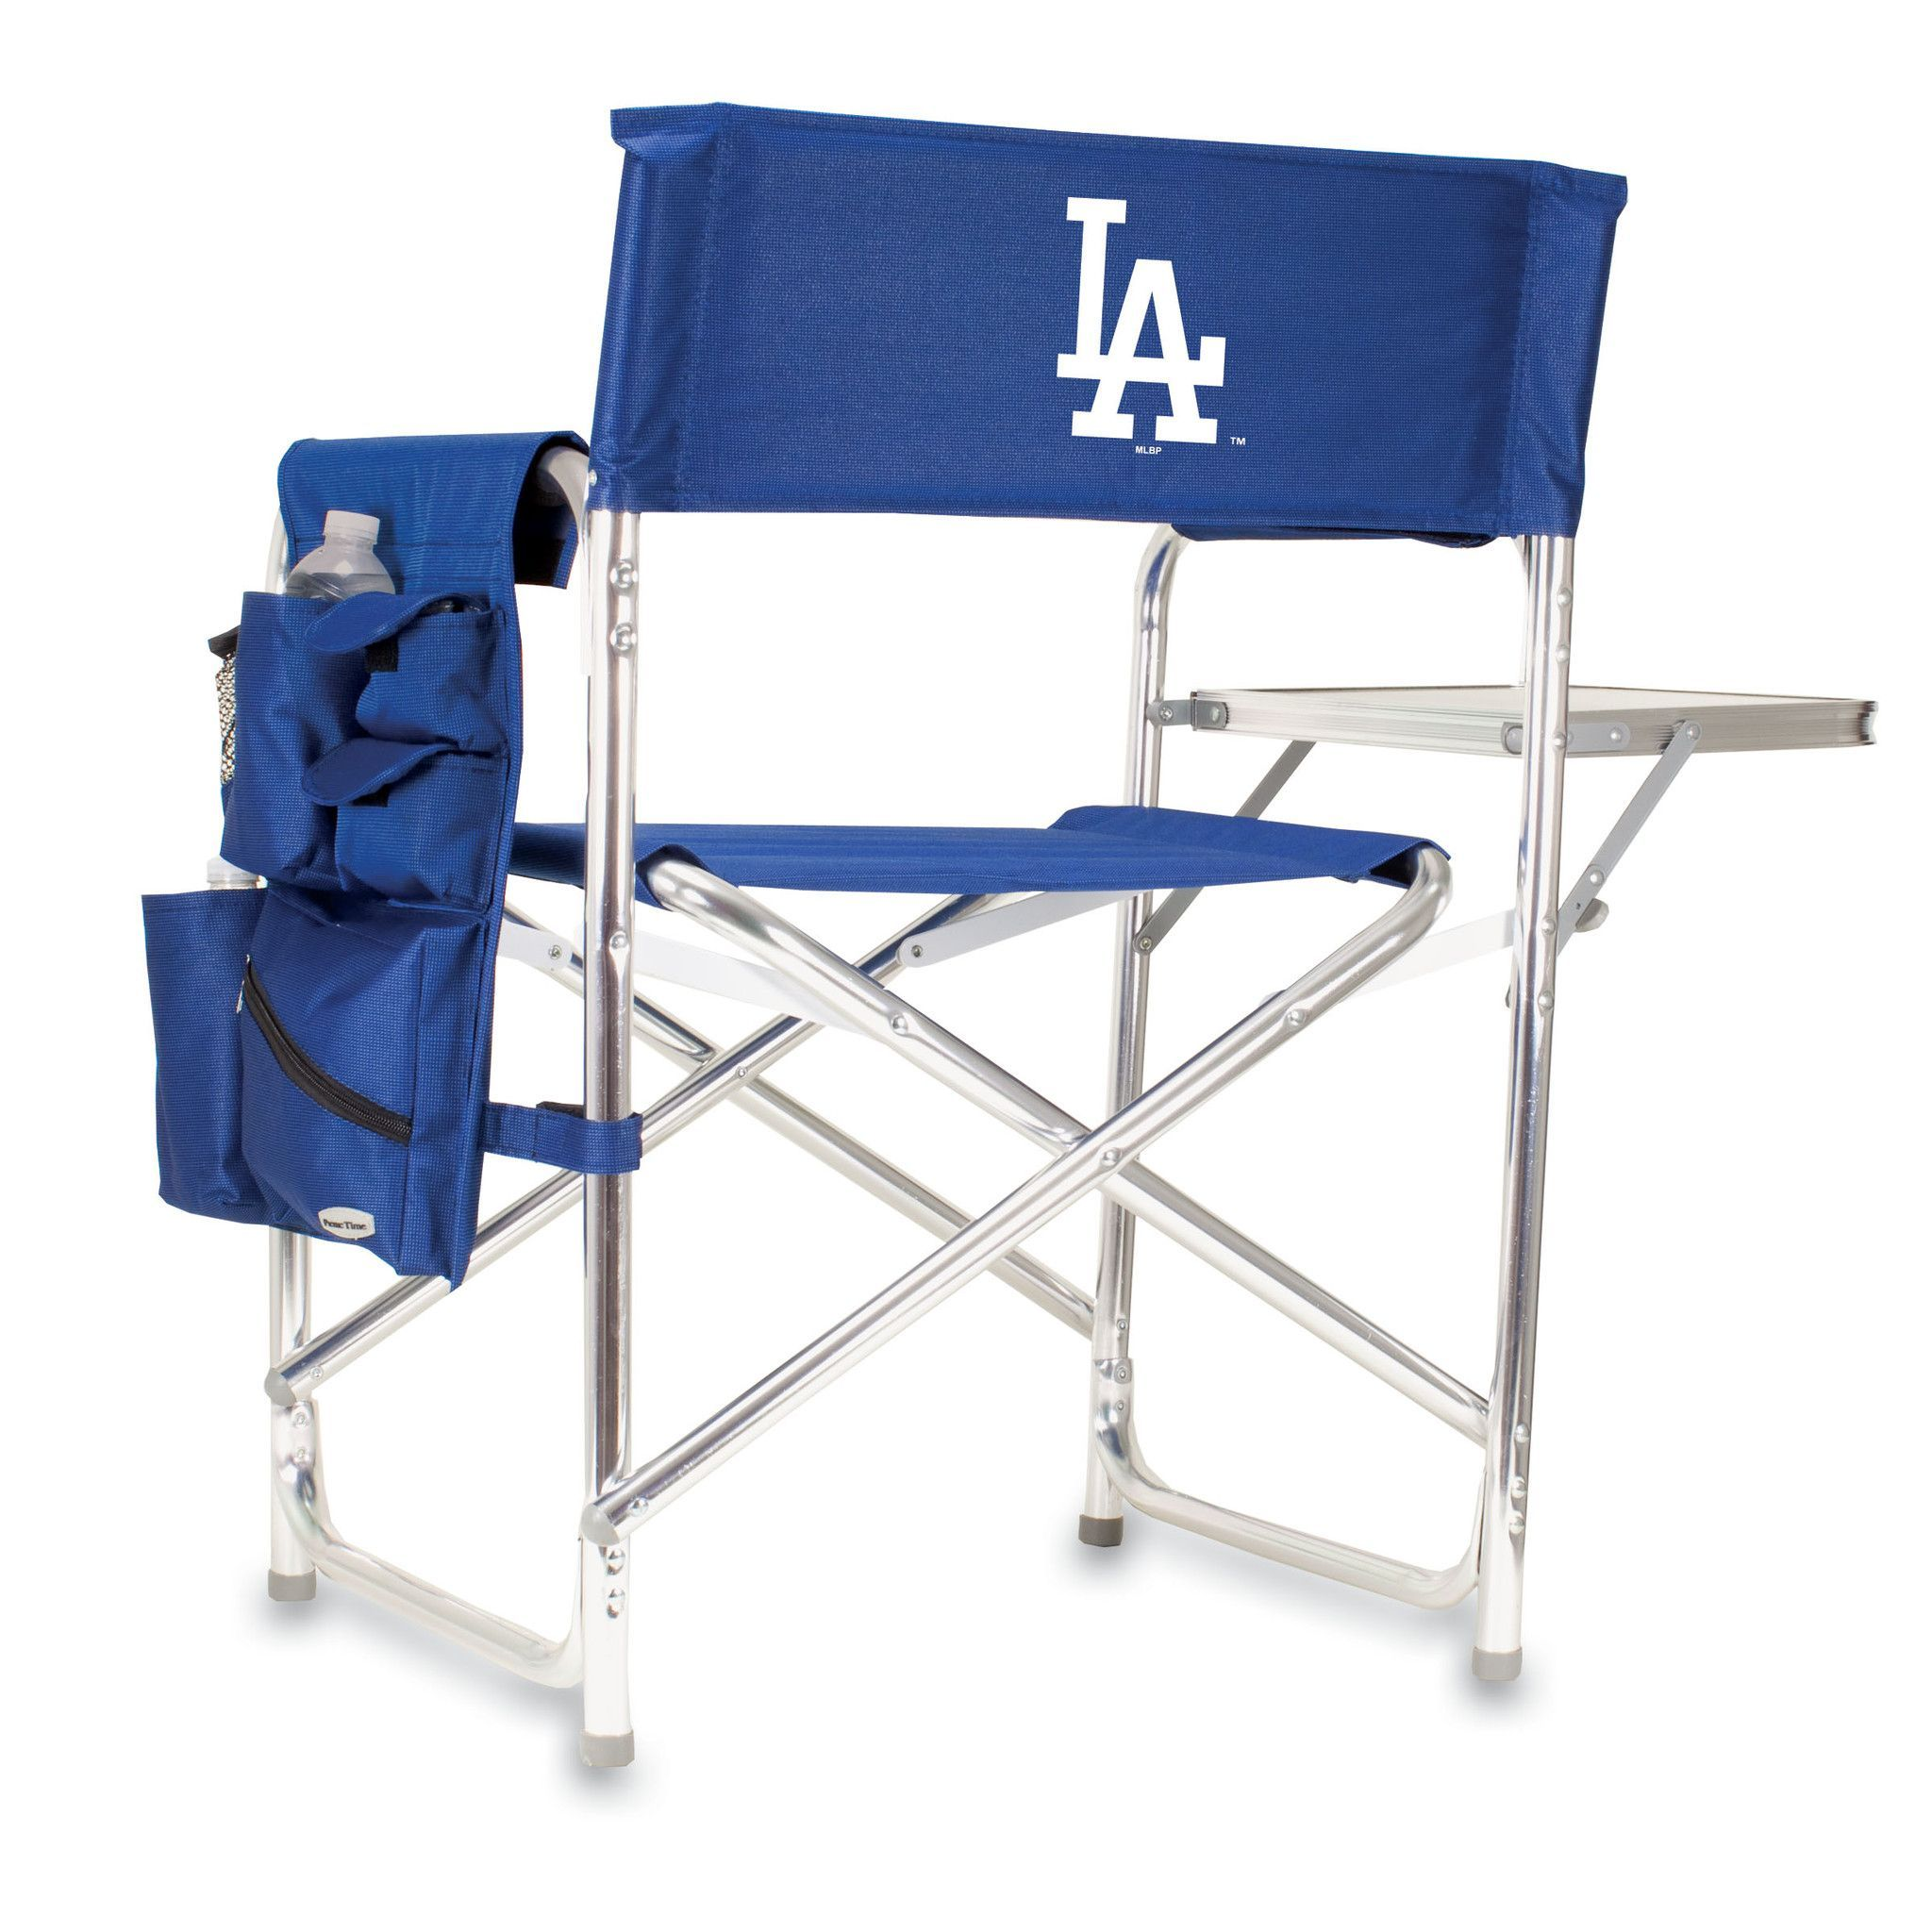 Amazing Sports Chair Los Angeles Dodgers Dodger 3 Folding Caraccident5 Cool Chair Designs And Ideas Caraccident5Info